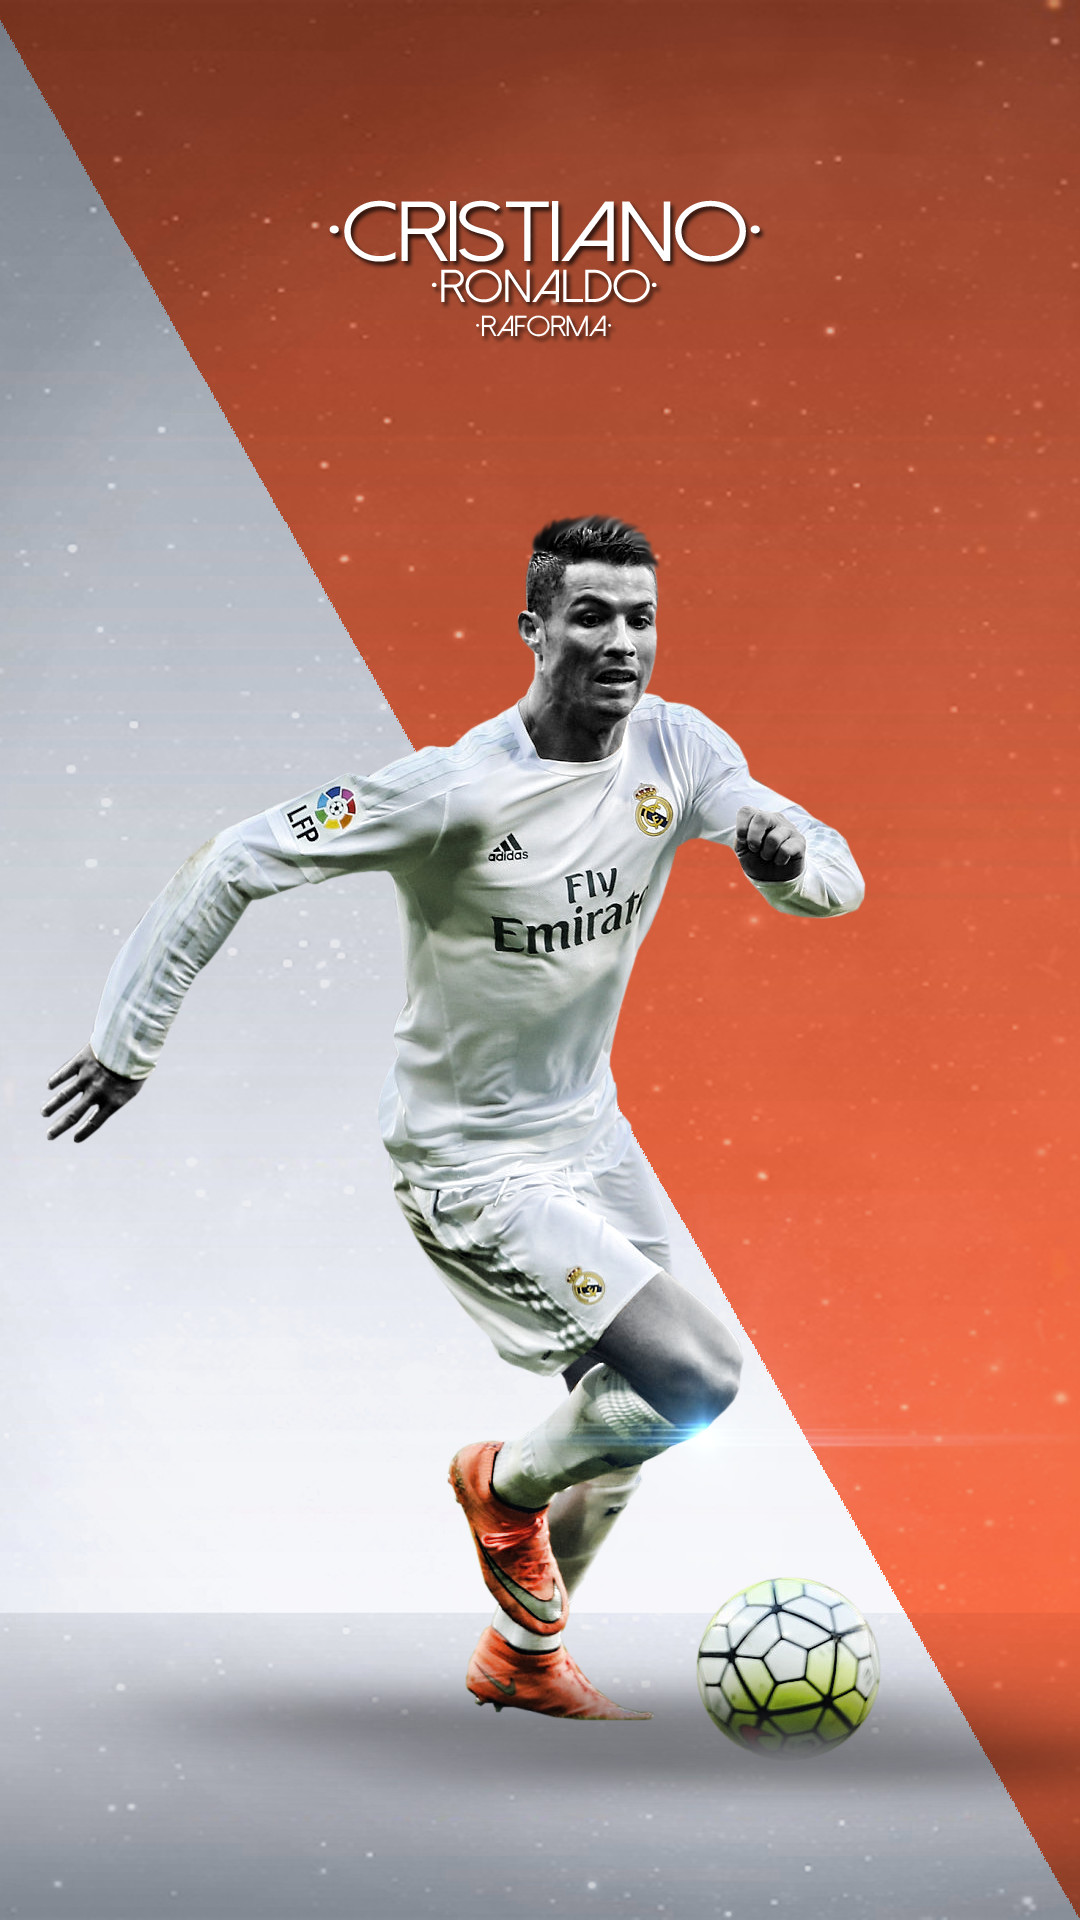 Cristiano Ronaldo Wallpaper For Iphone 74 Images